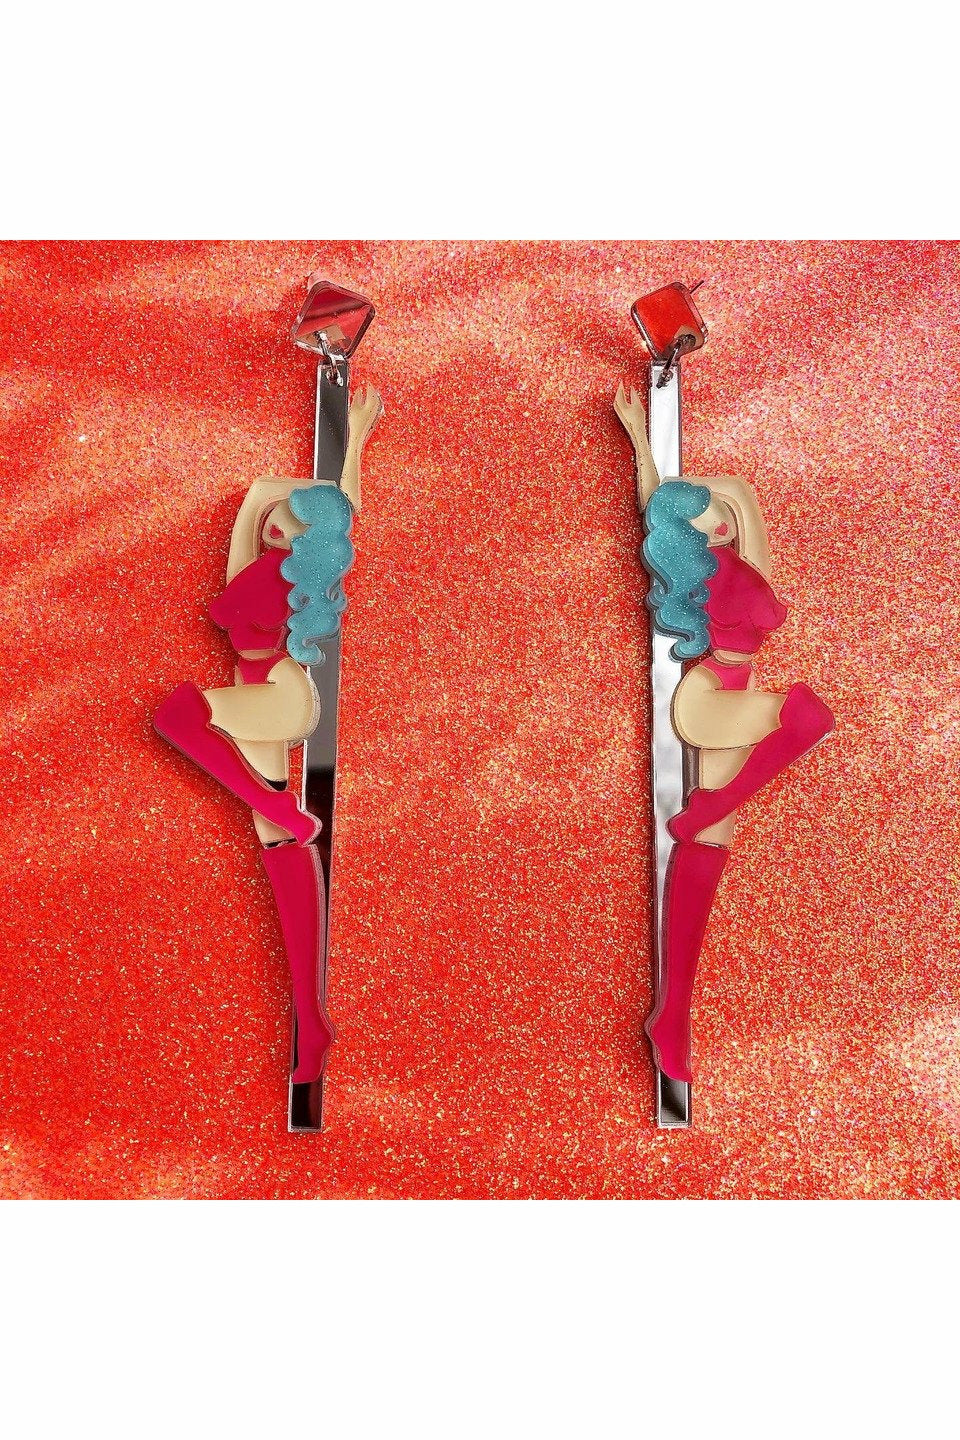 Pole Dancer Earrings